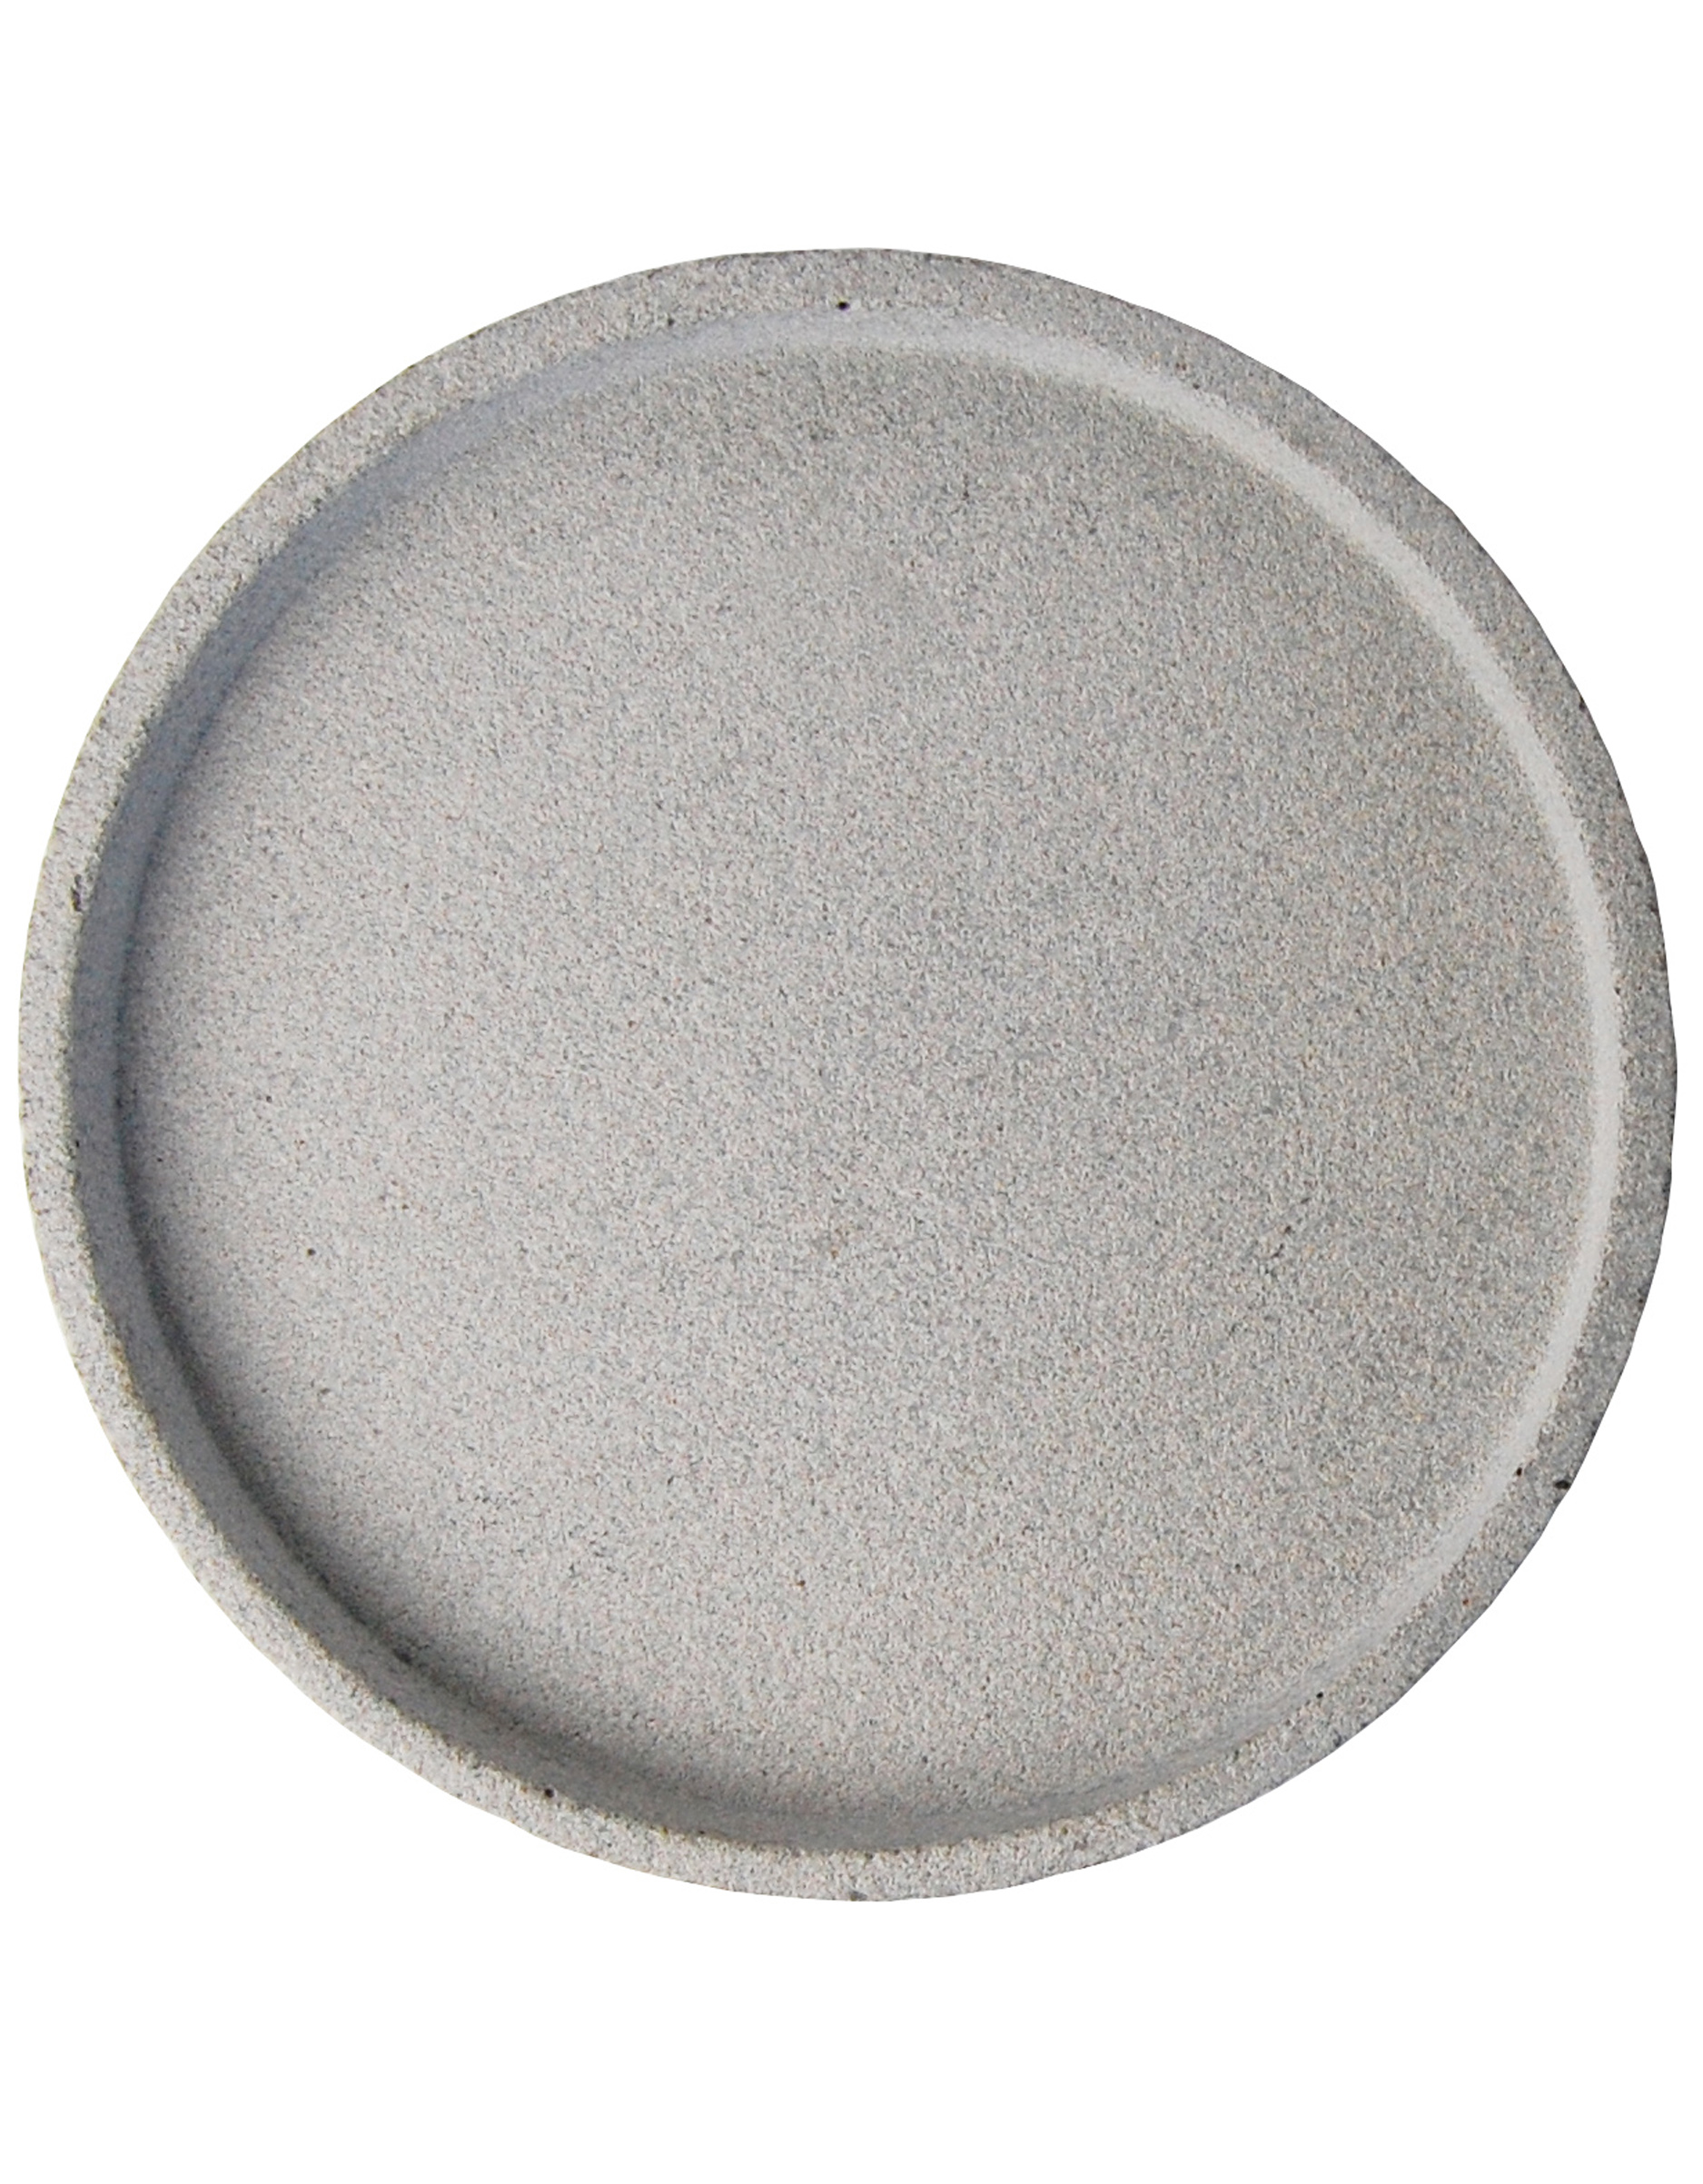 ZAKKIA - Concrete Round Tray - Natural